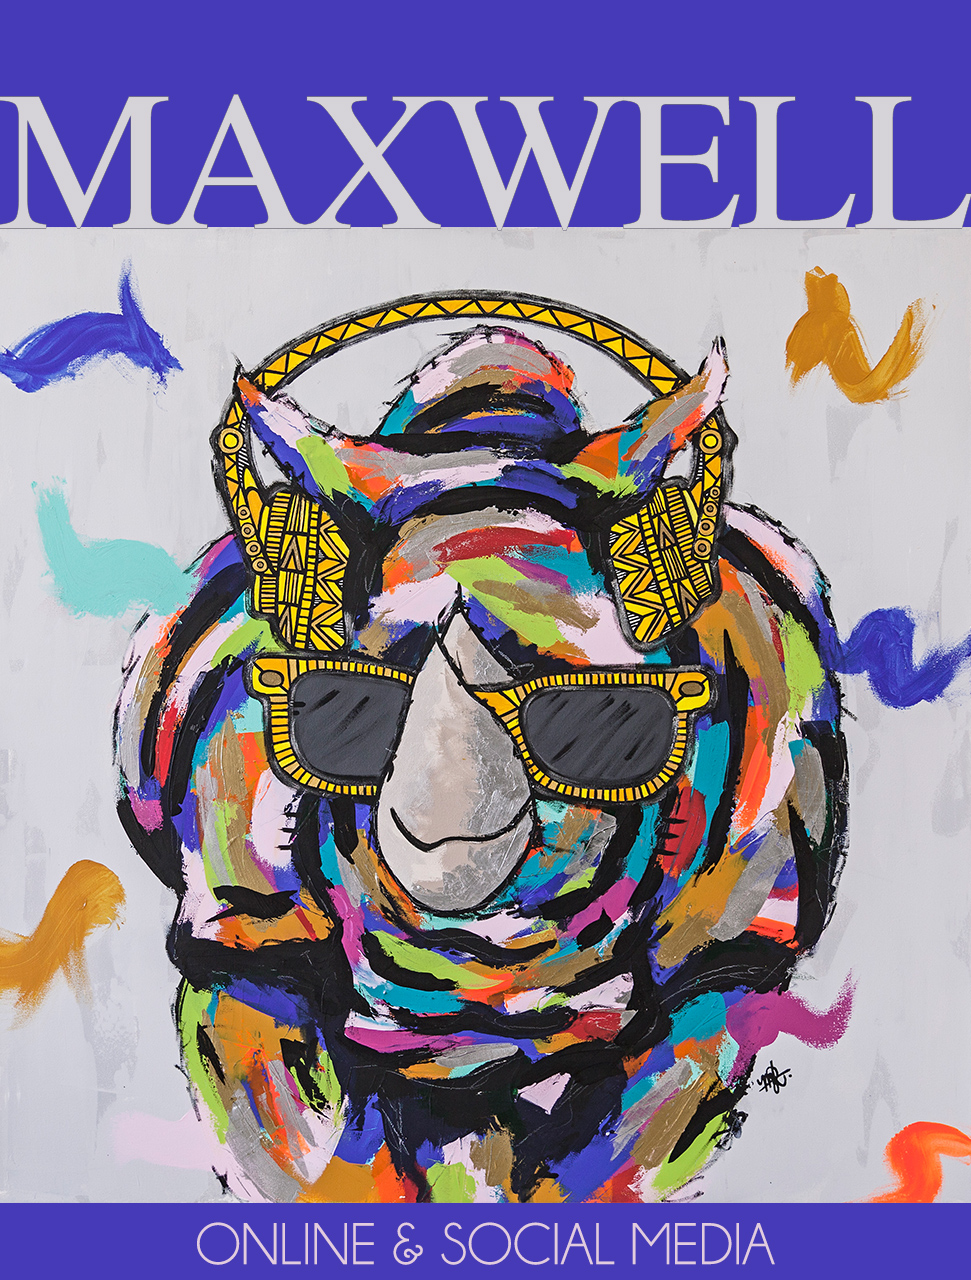 MAXWELL ONLINE MAY 2019